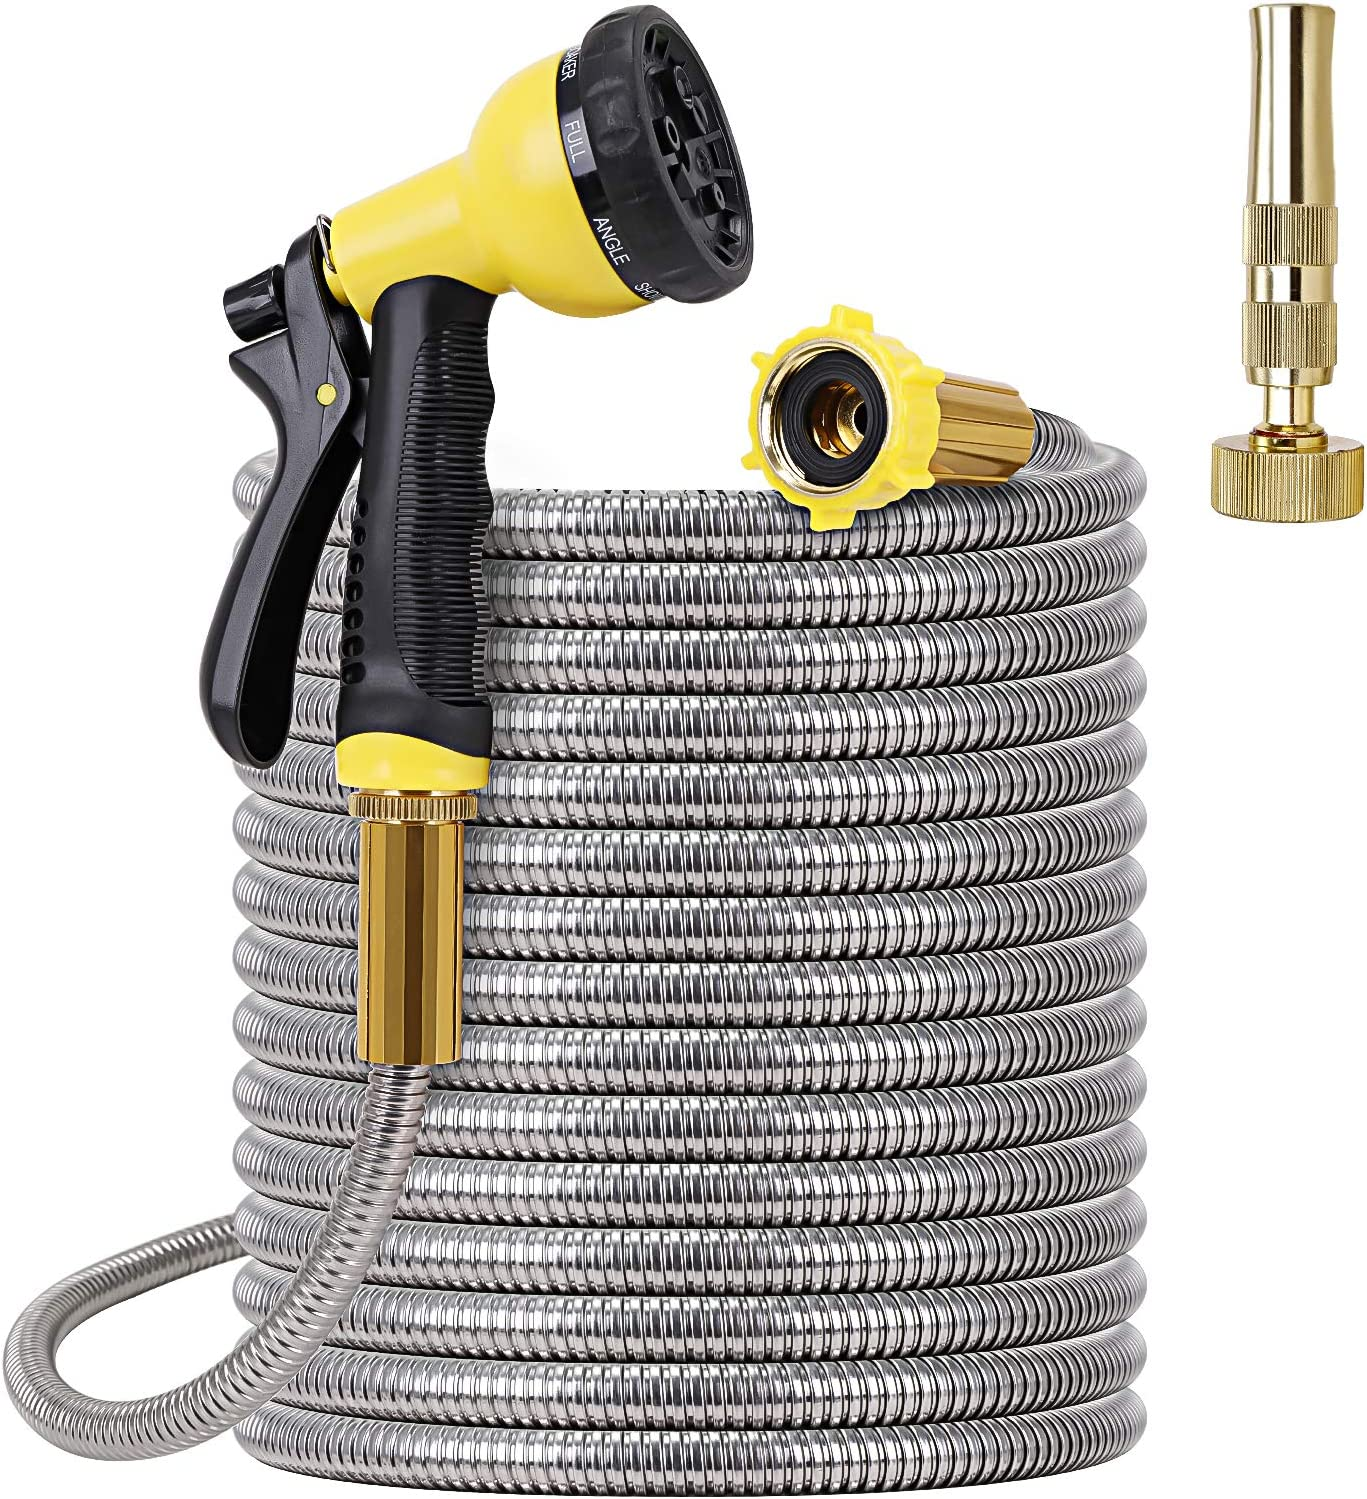 FOXEASE Metal Garden Hose 25FT- Stainless Steel Heavy Duty Water Hose with Solid Metal Nozzle &8 Function Sprayer, Portable & Lightweight Kink Free Yard Hose, Outdoor Hose